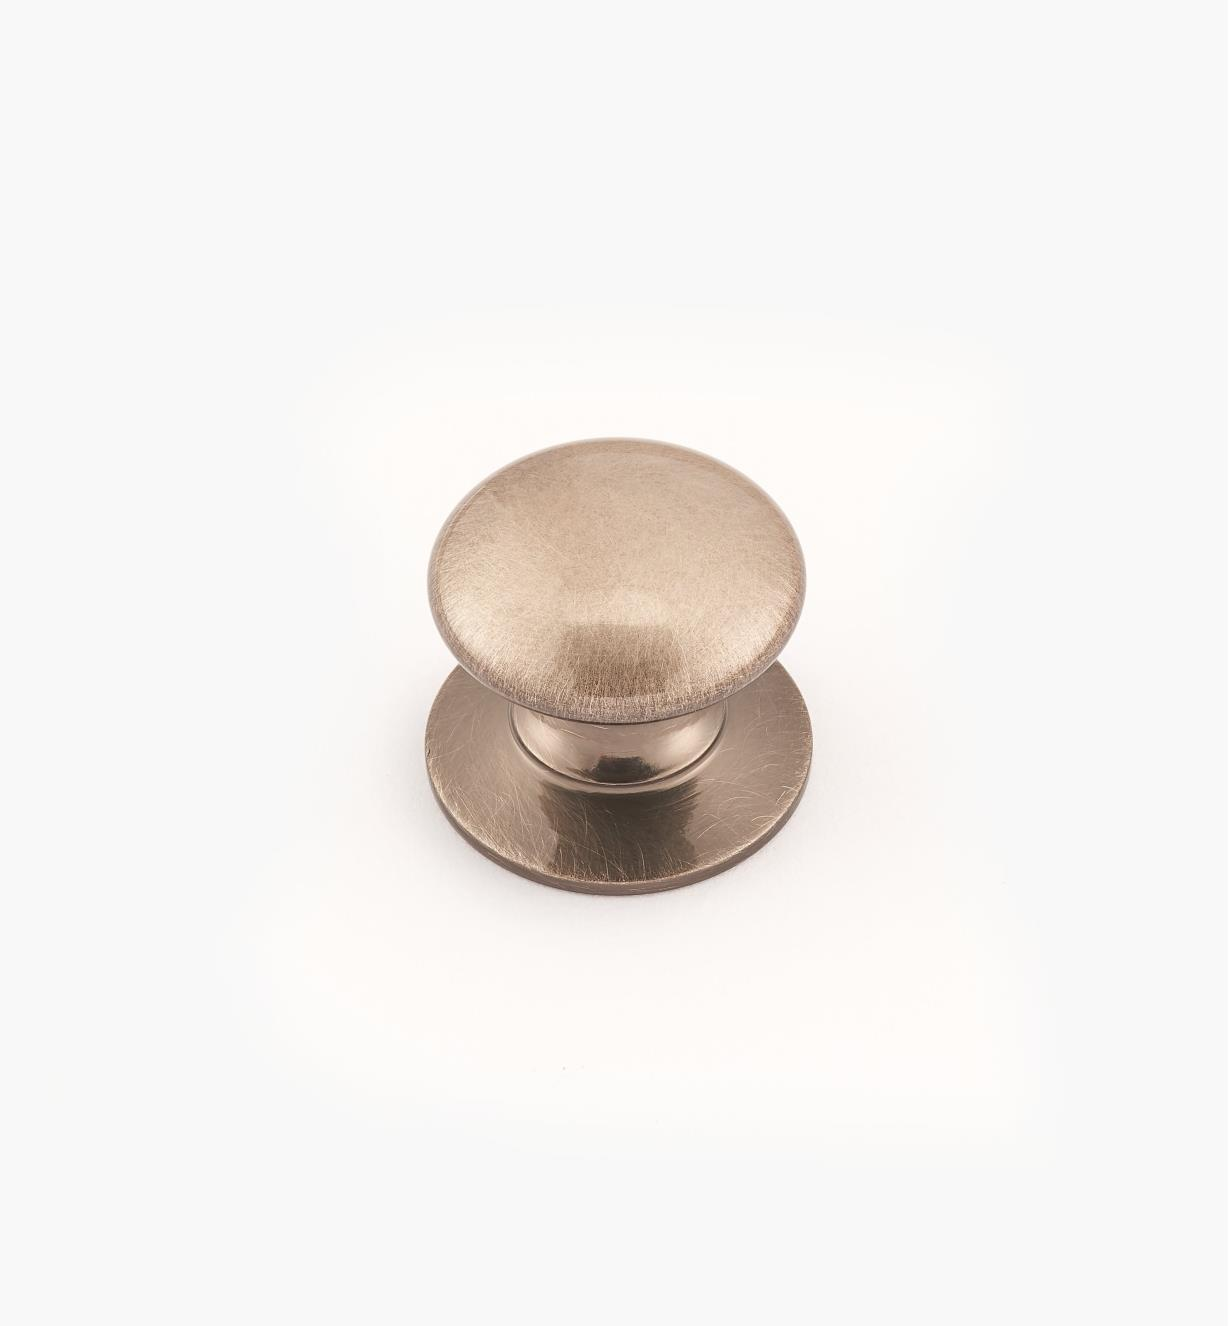 "02W2727 - Antique Nickel Suite - 3/4"" x 5/8"" Round Brass Knob"